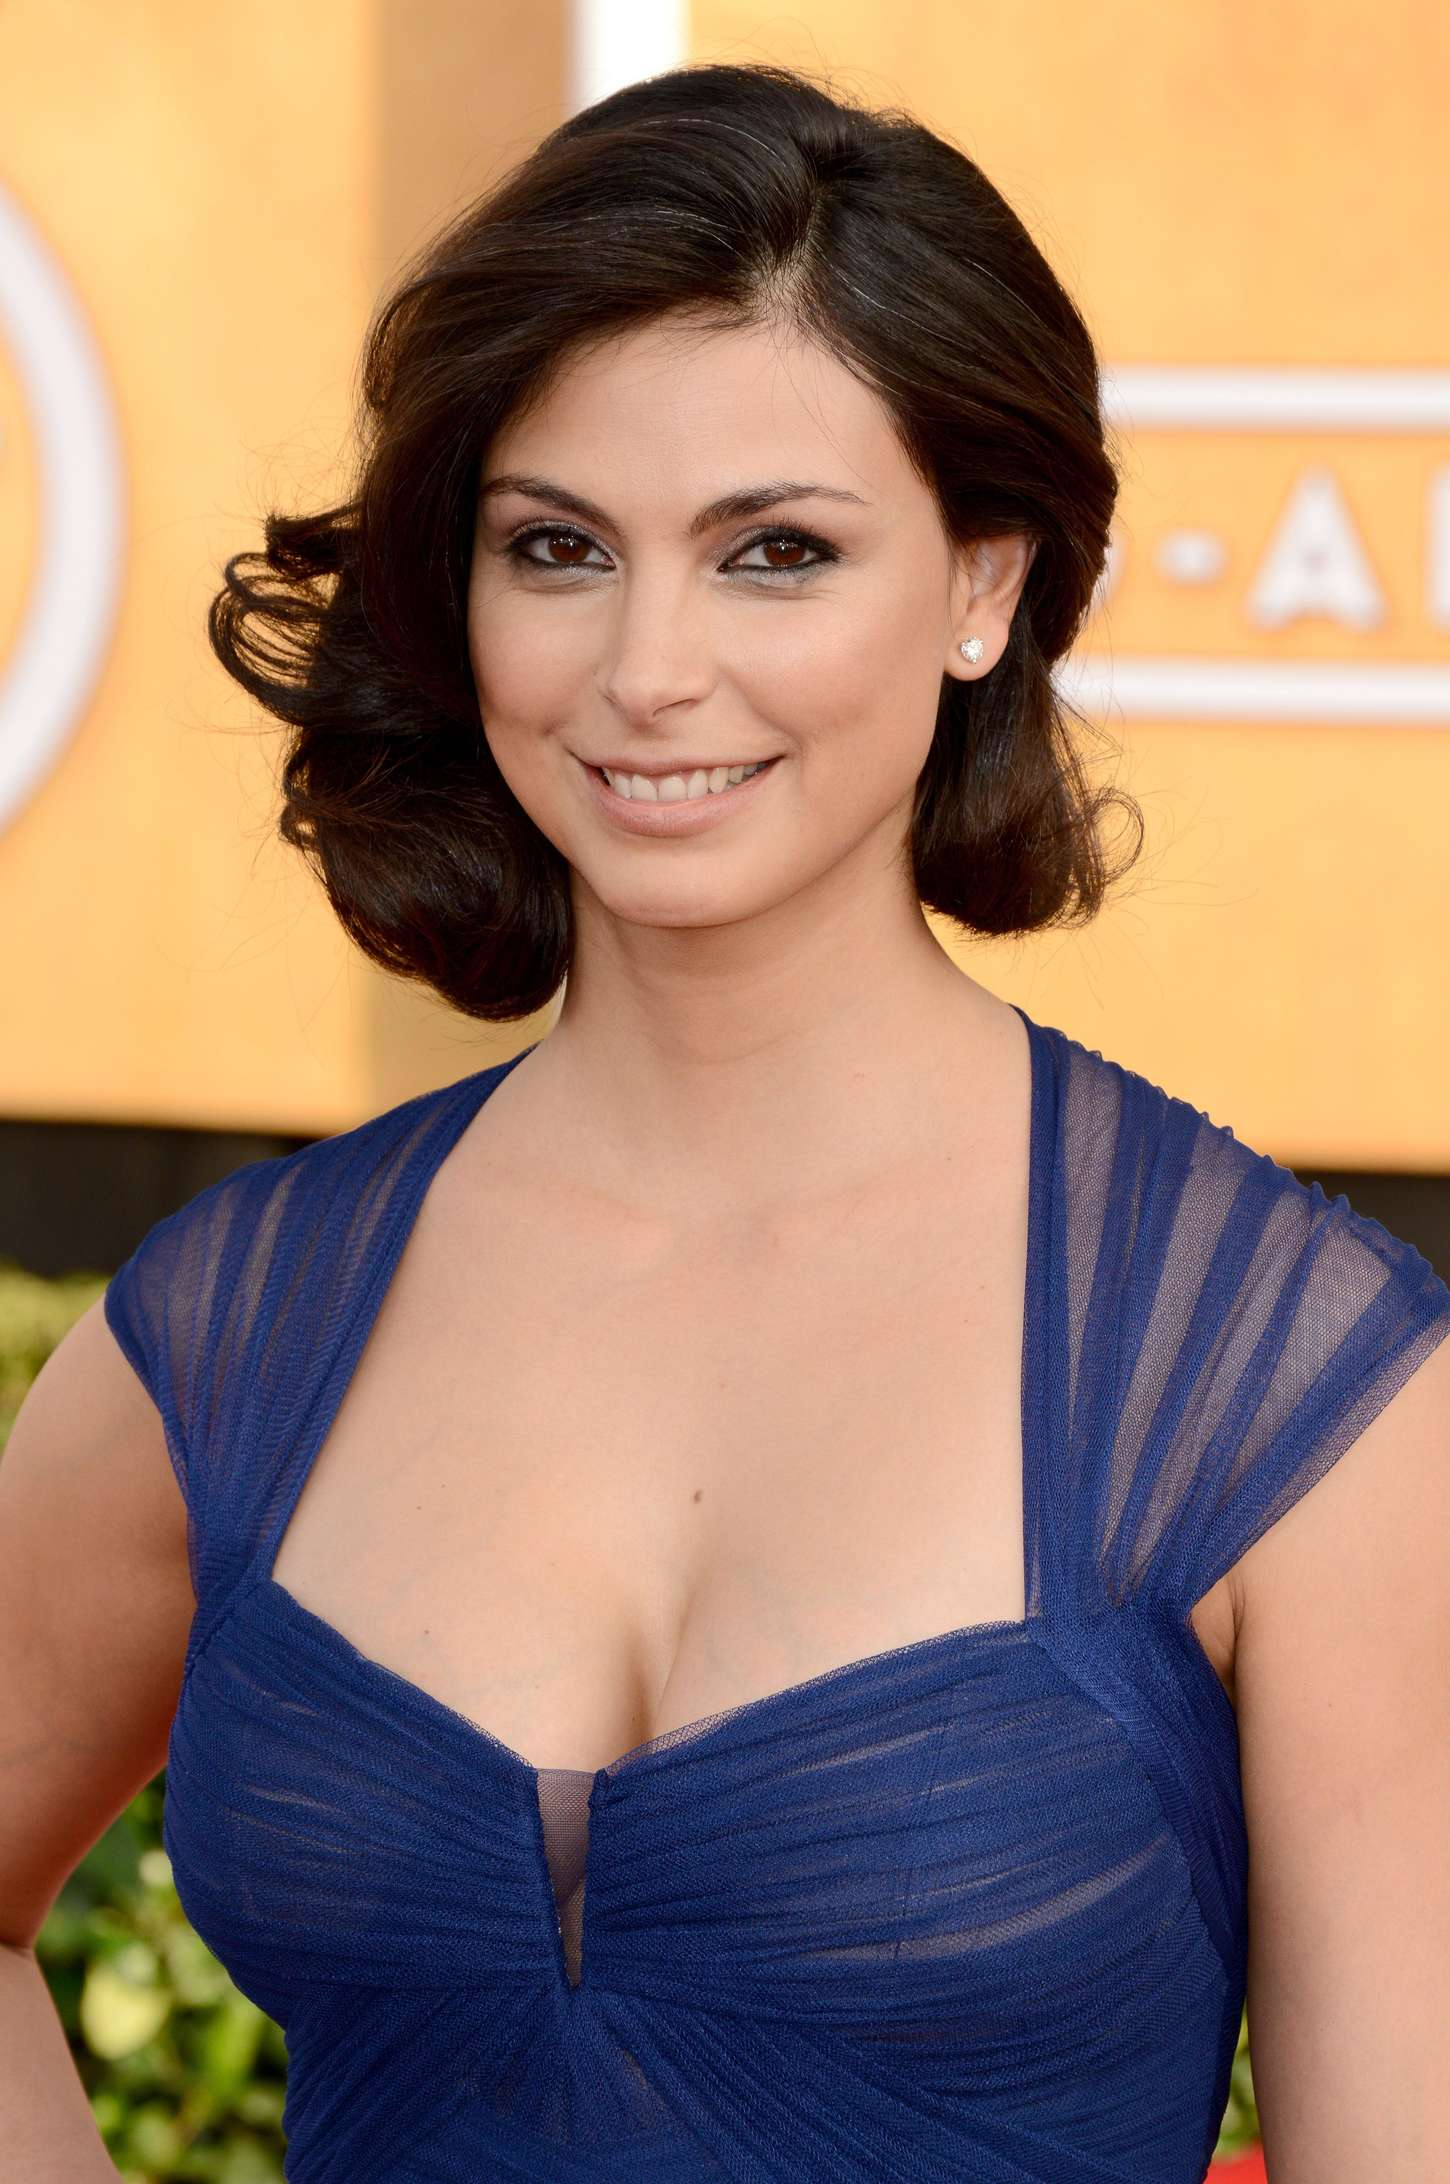 Pics Morena Baccarin nudes (55 foto and video), Sexy, Cleavage, Feet, butt 2019